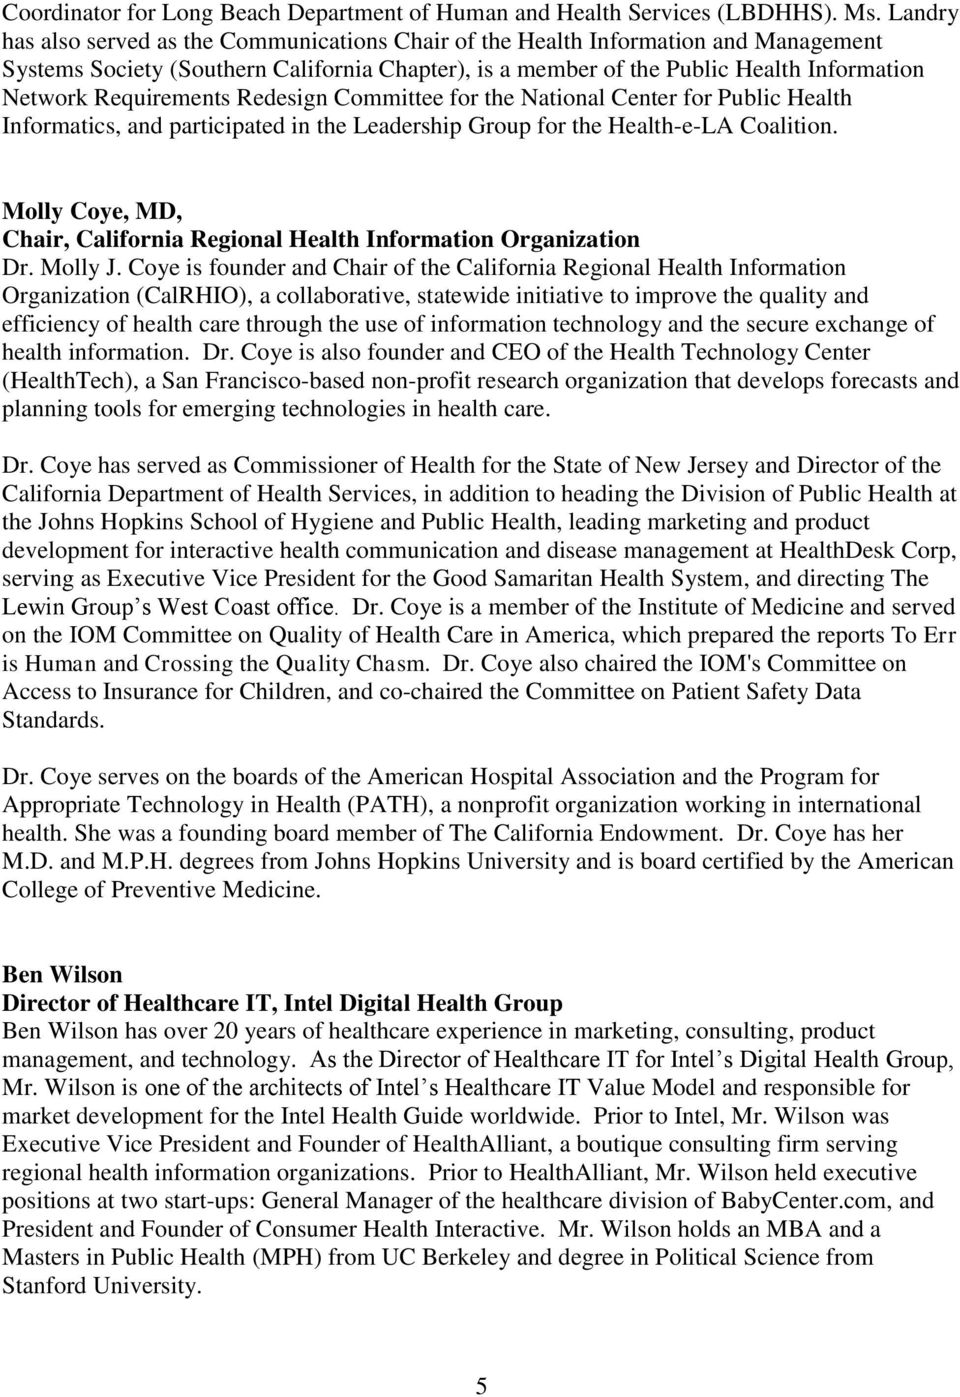 Requirements Redesign Committee for the National Center for Public Health Informatics, and participated in the Leadership Group for the Health-e-LA Coalition.